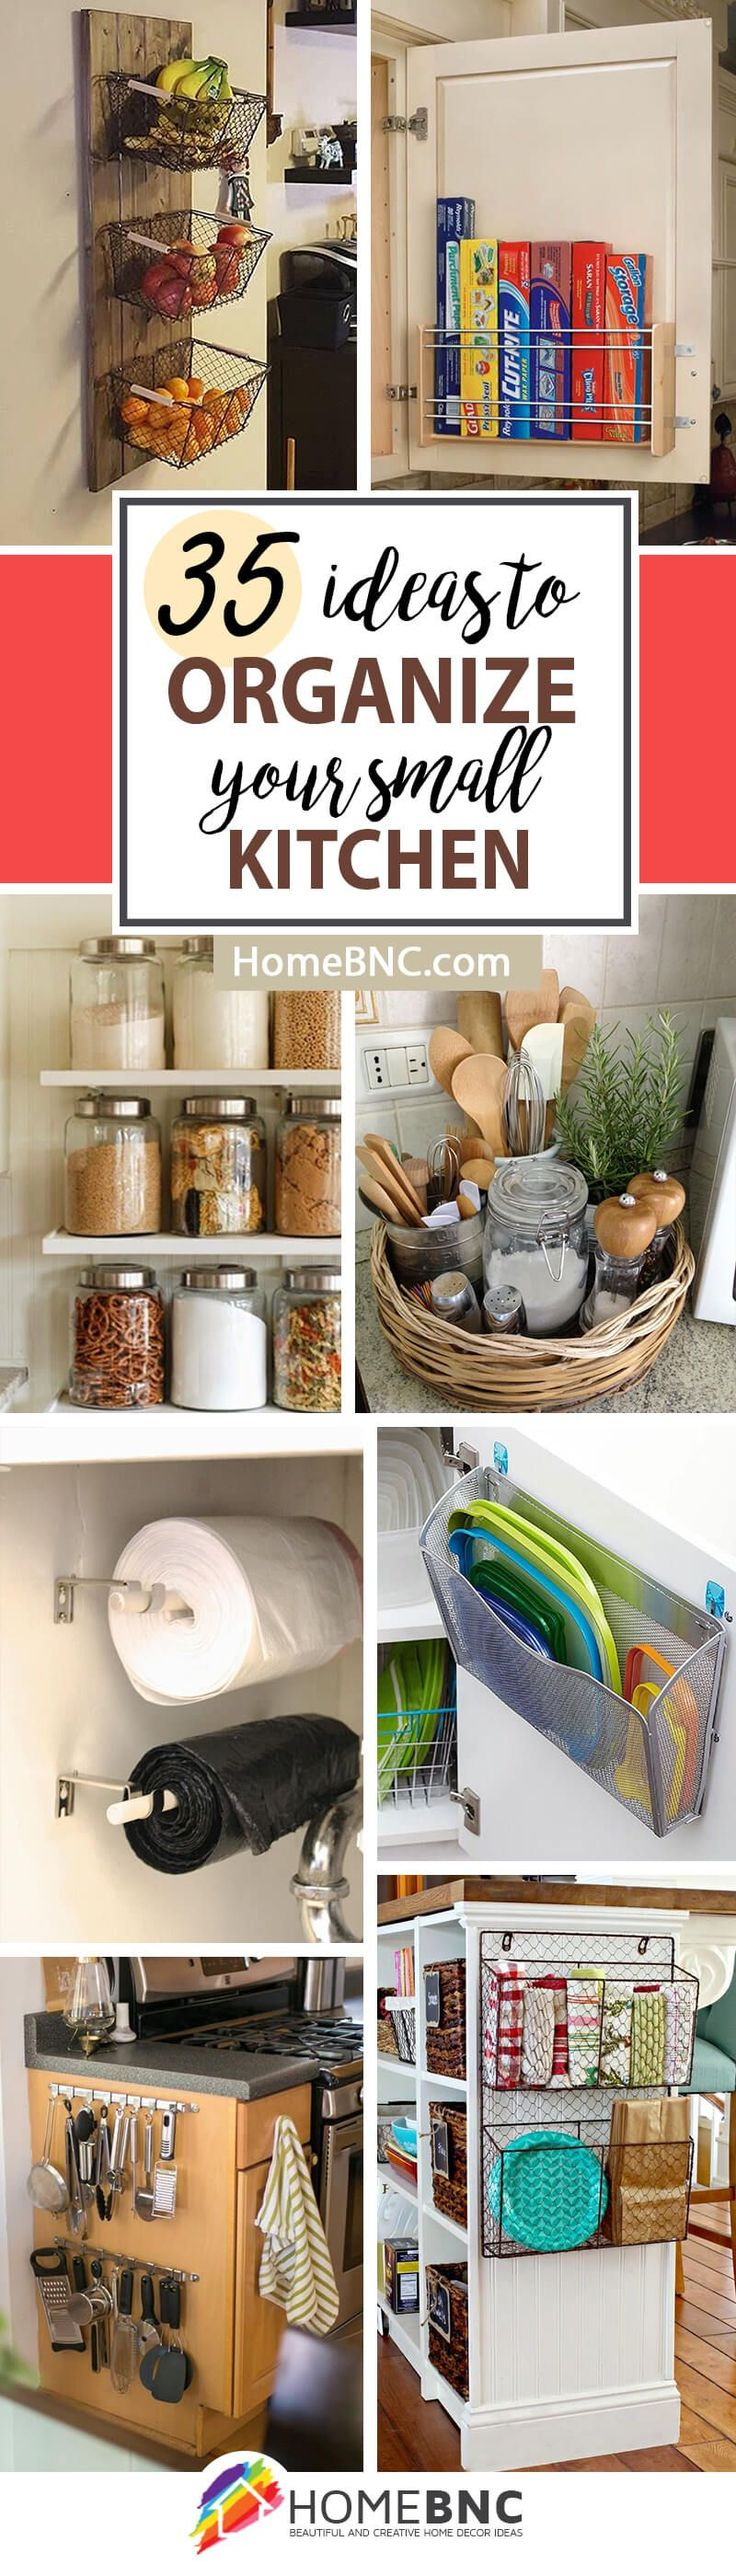 Ideas for kitchen organization - 35 Practical Storage Ideas For A Small Kitchen Organization